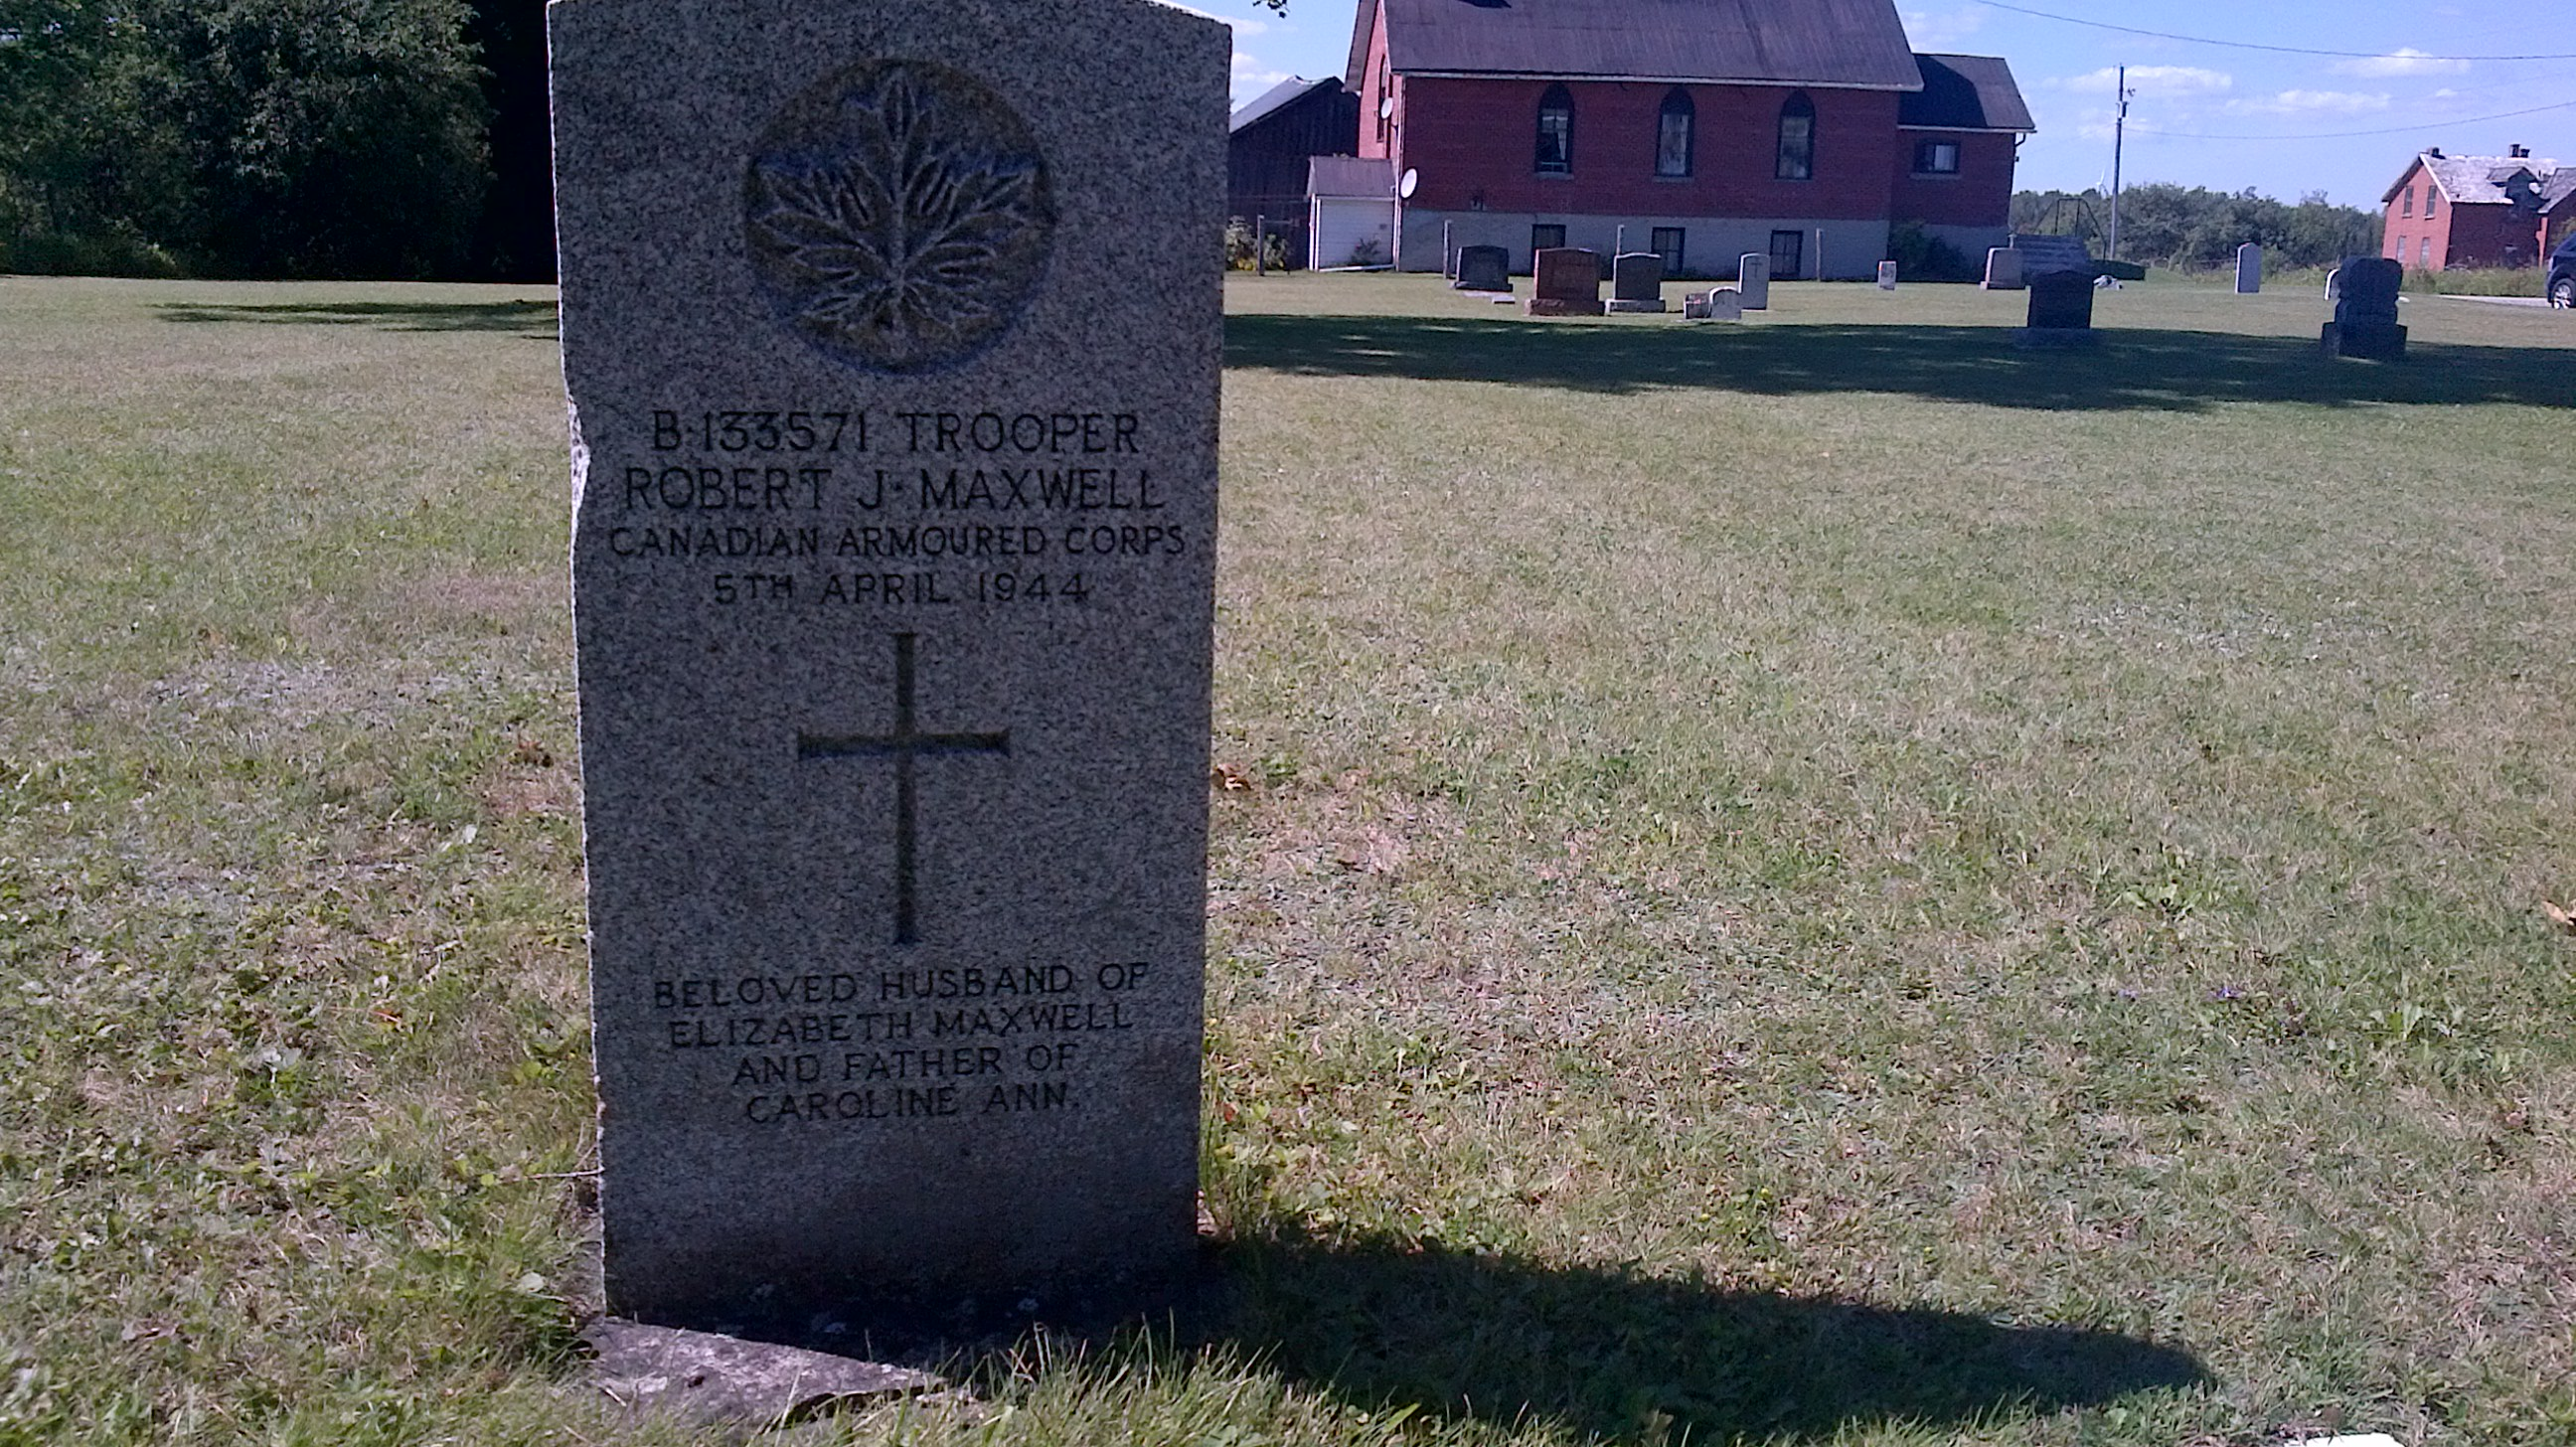 Grave marker– B133571